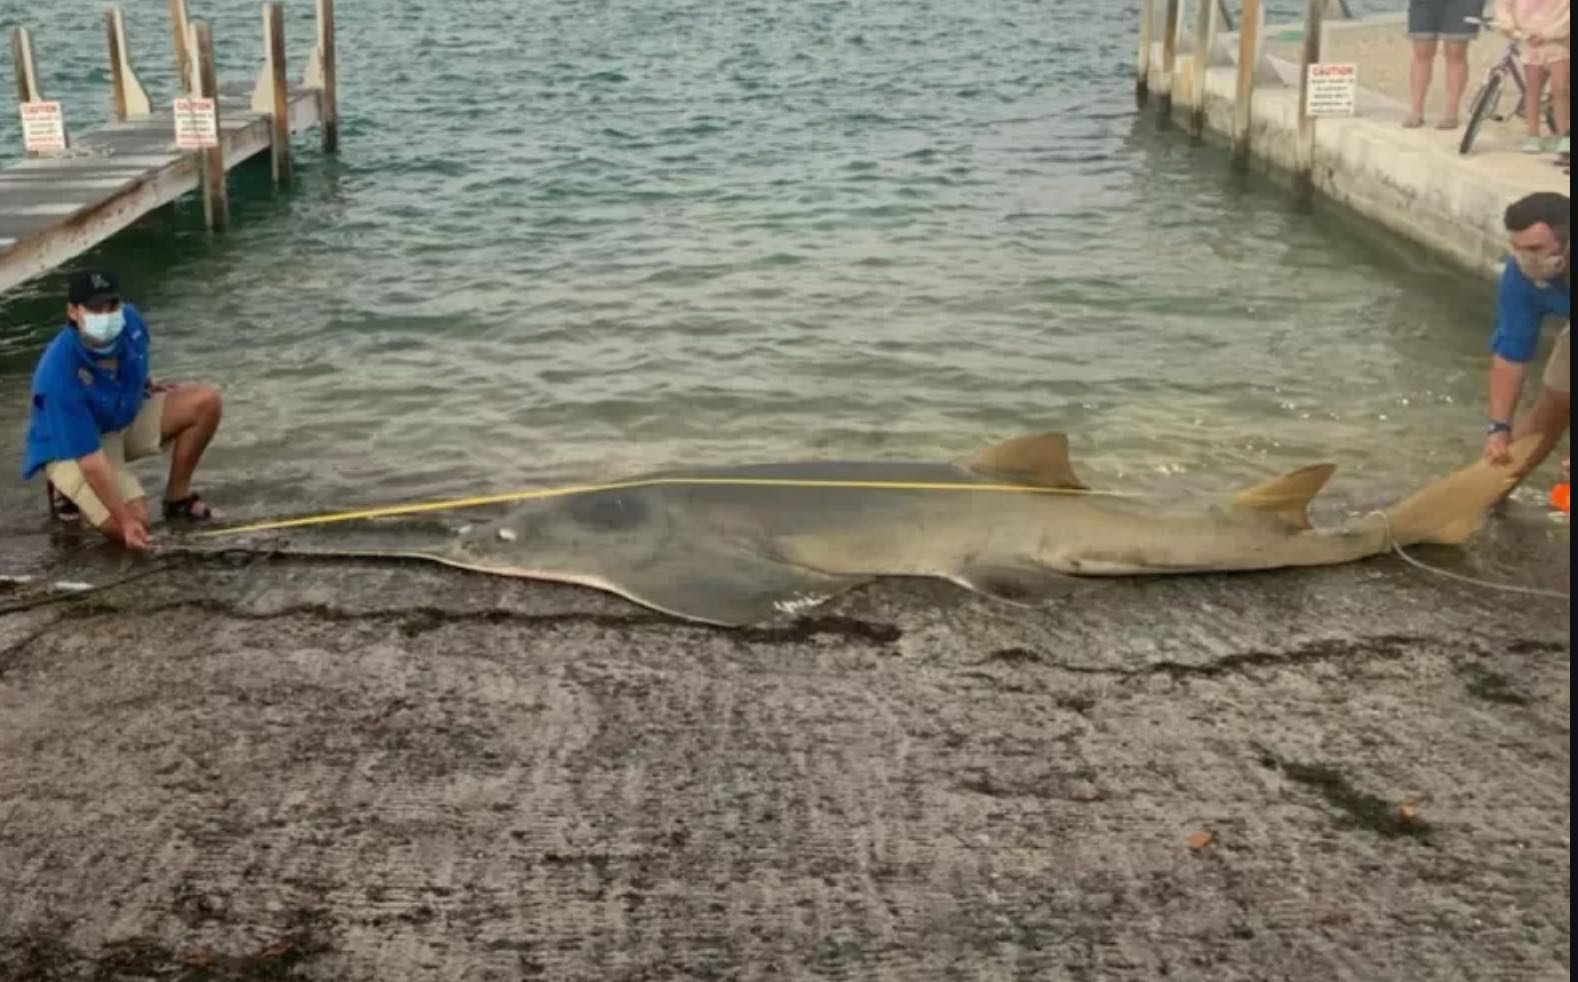 Absolutely massive smalltooth sawfish washed up in Florda